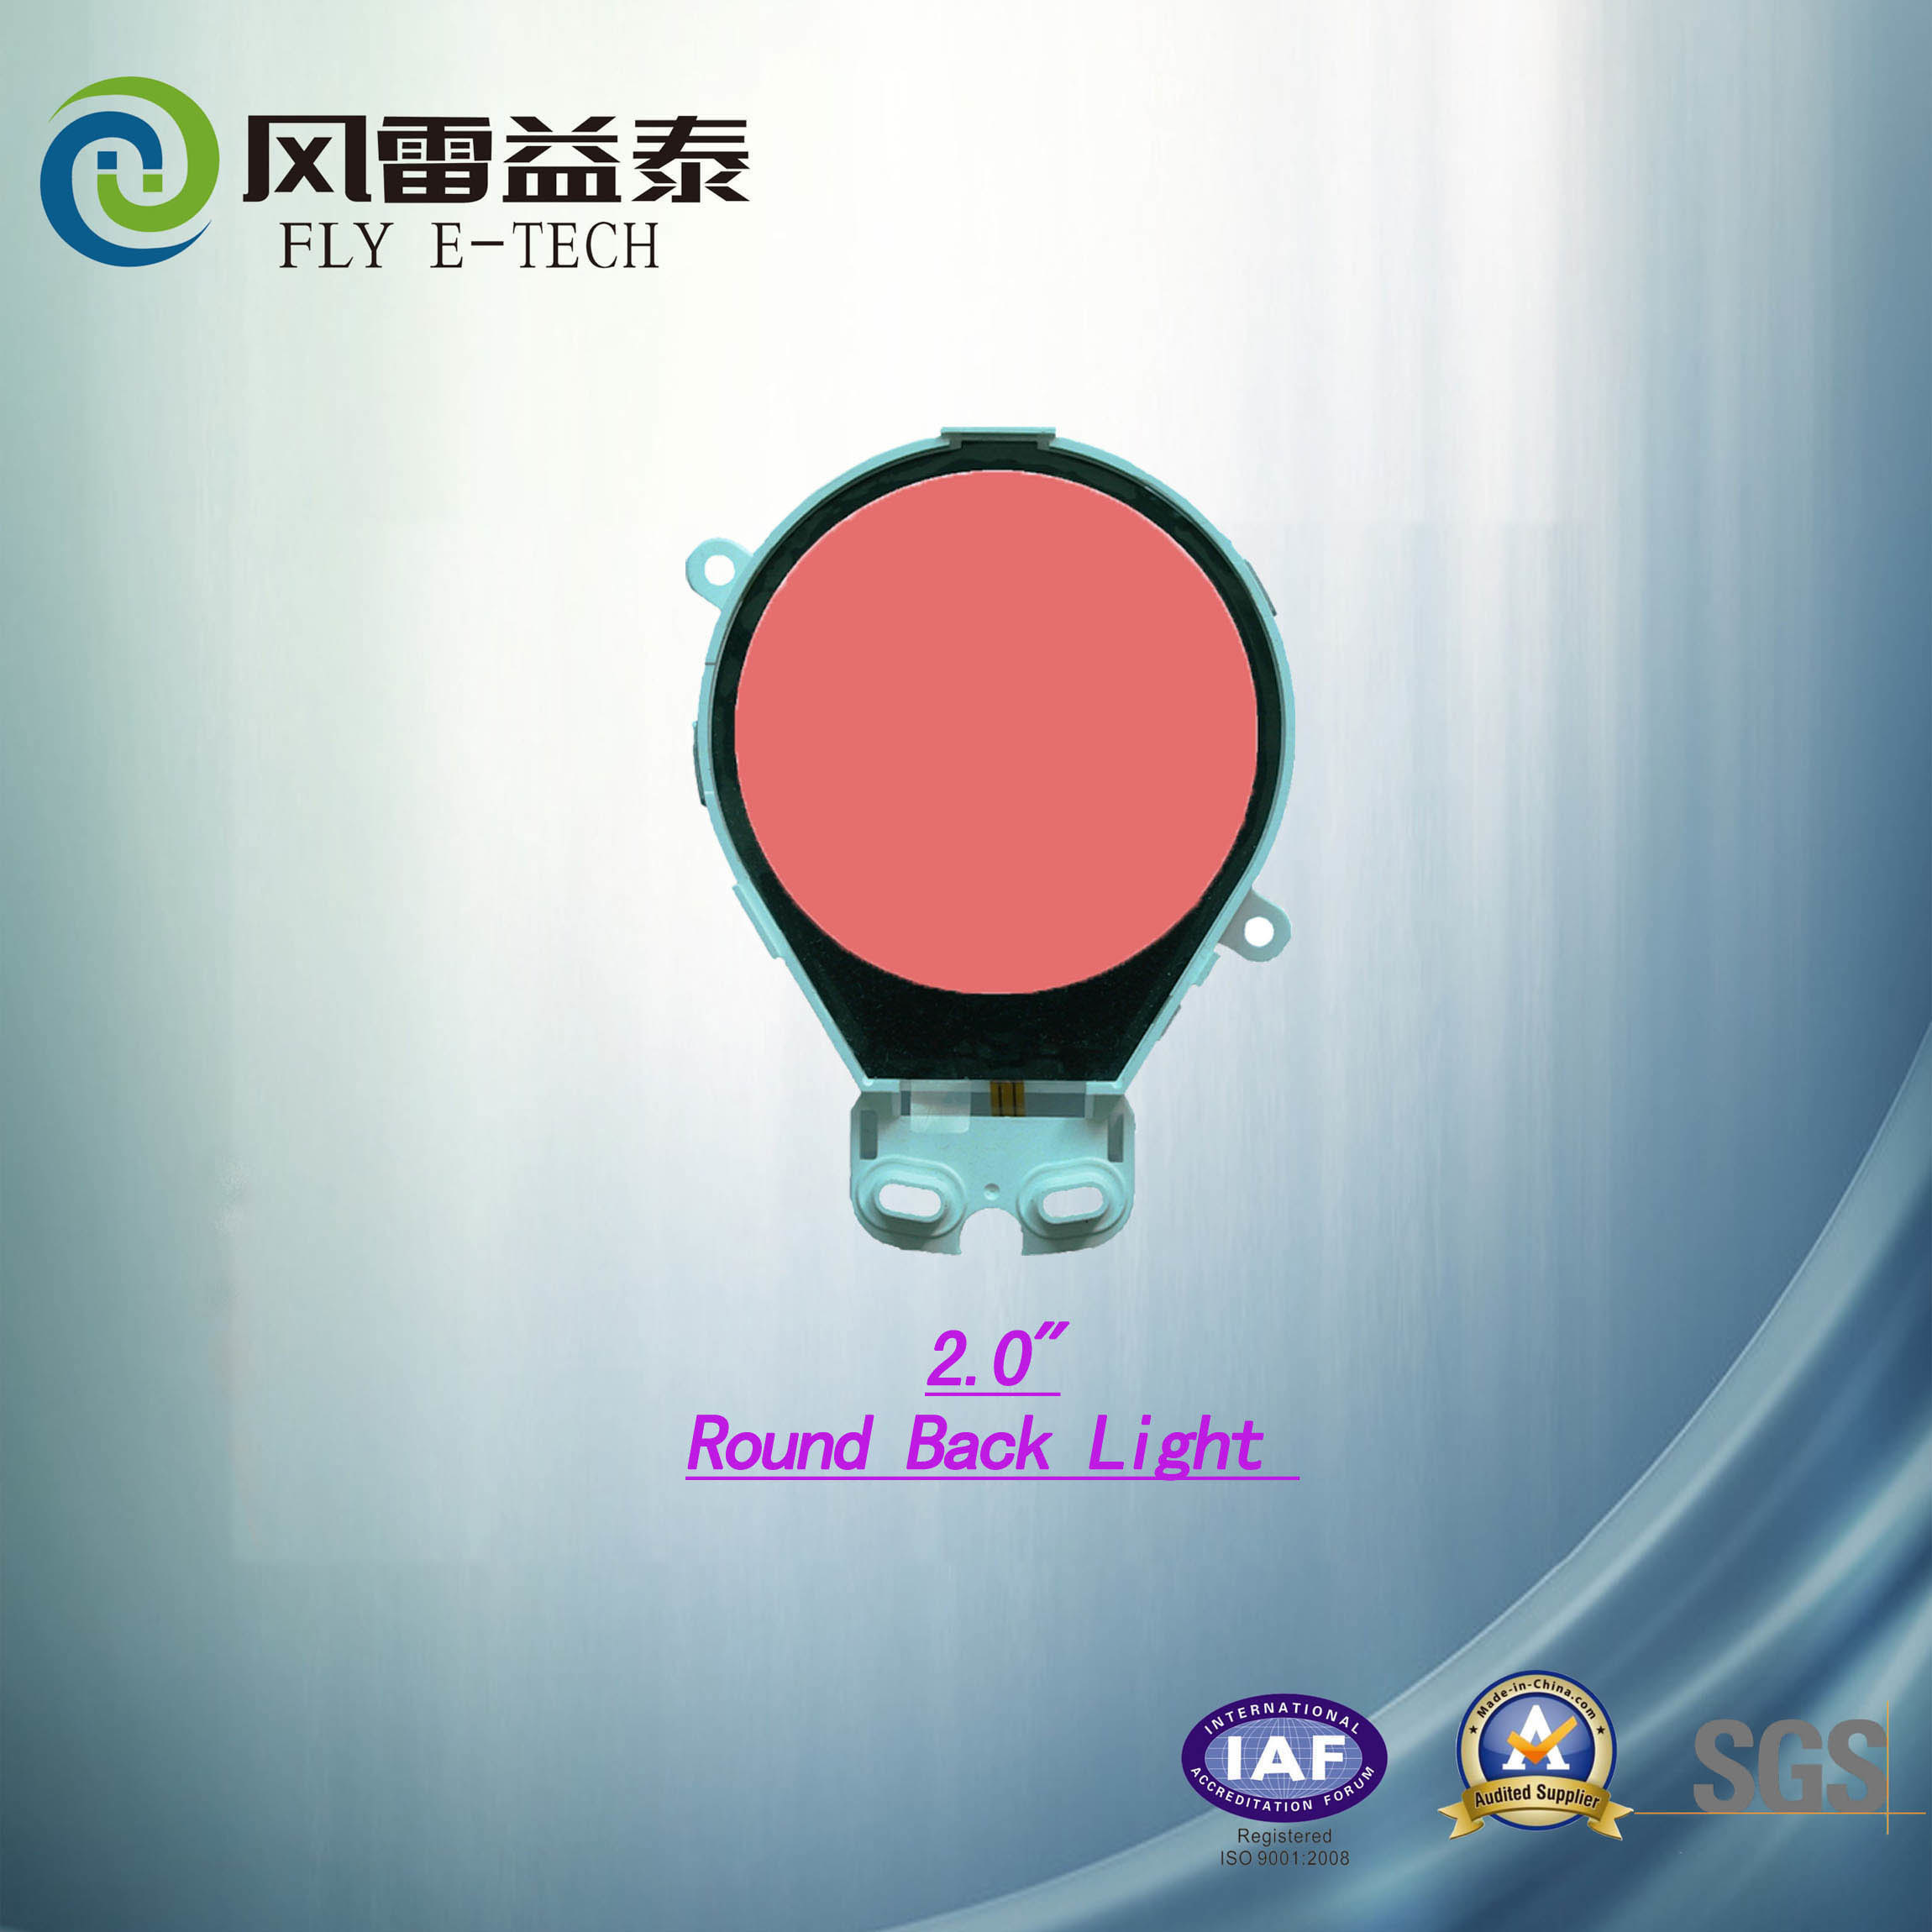 Rounded Vehicle - Used Back Light